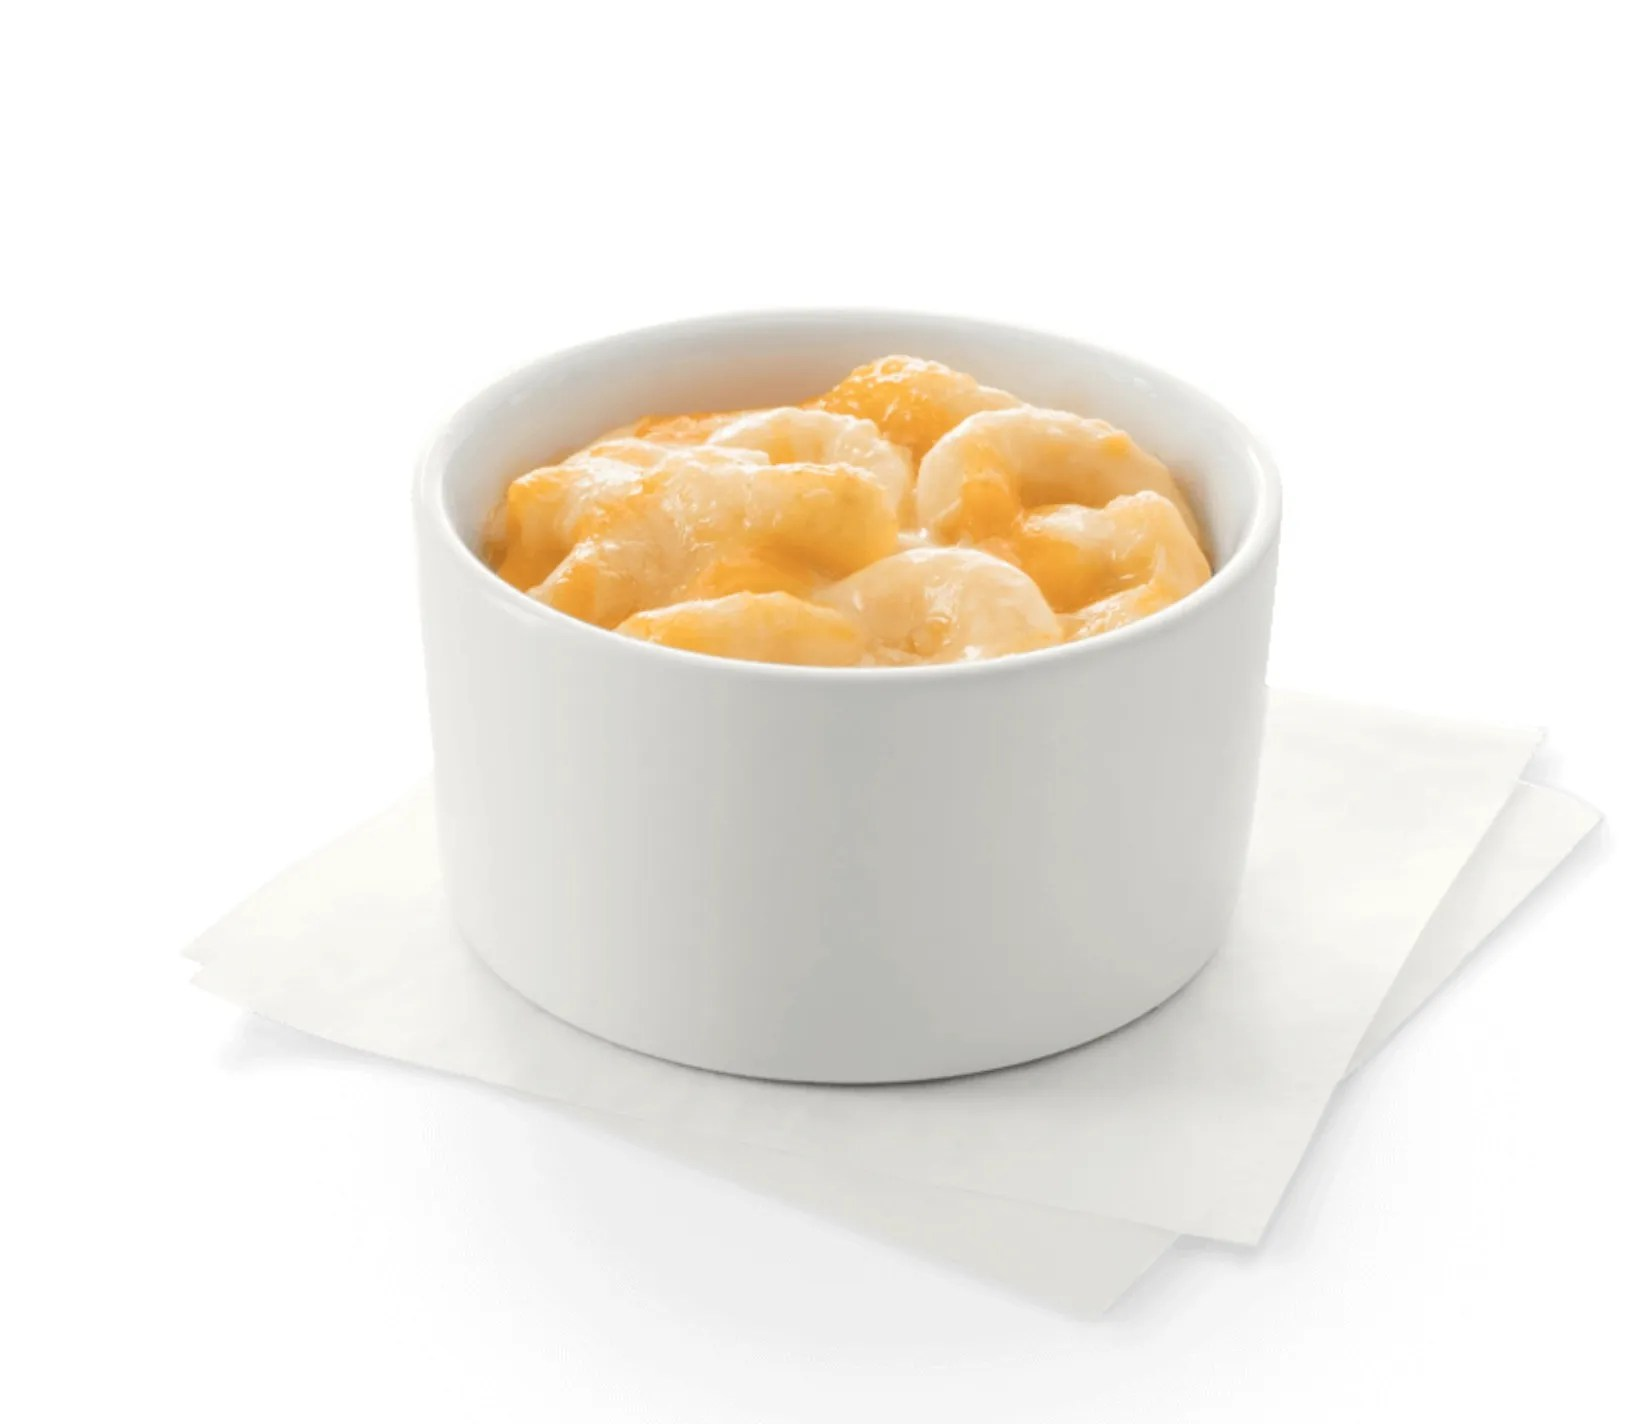 Chick-fil-A testing macaroni and cheese on menu in six cities